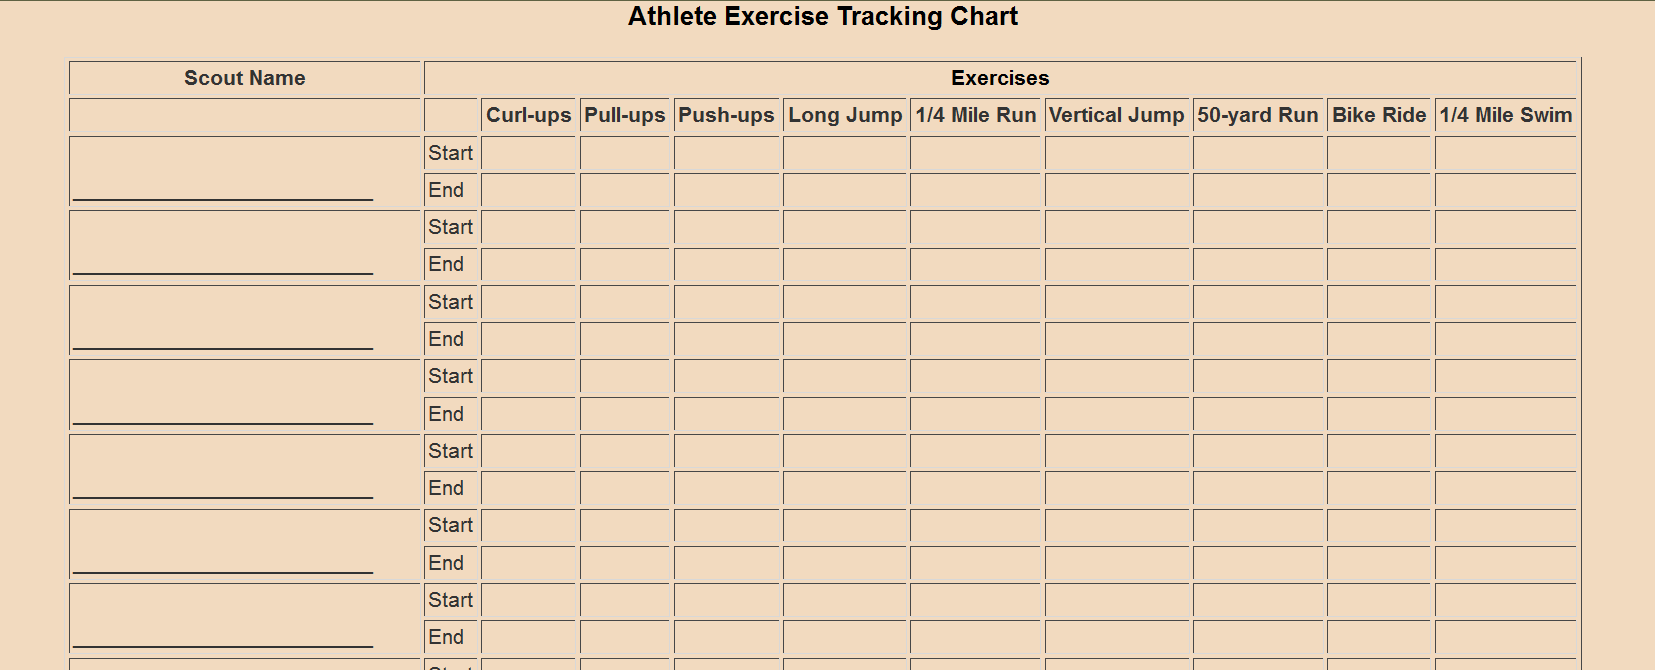 Webelos Athlete Tracking Chart Cub Scout Ideas